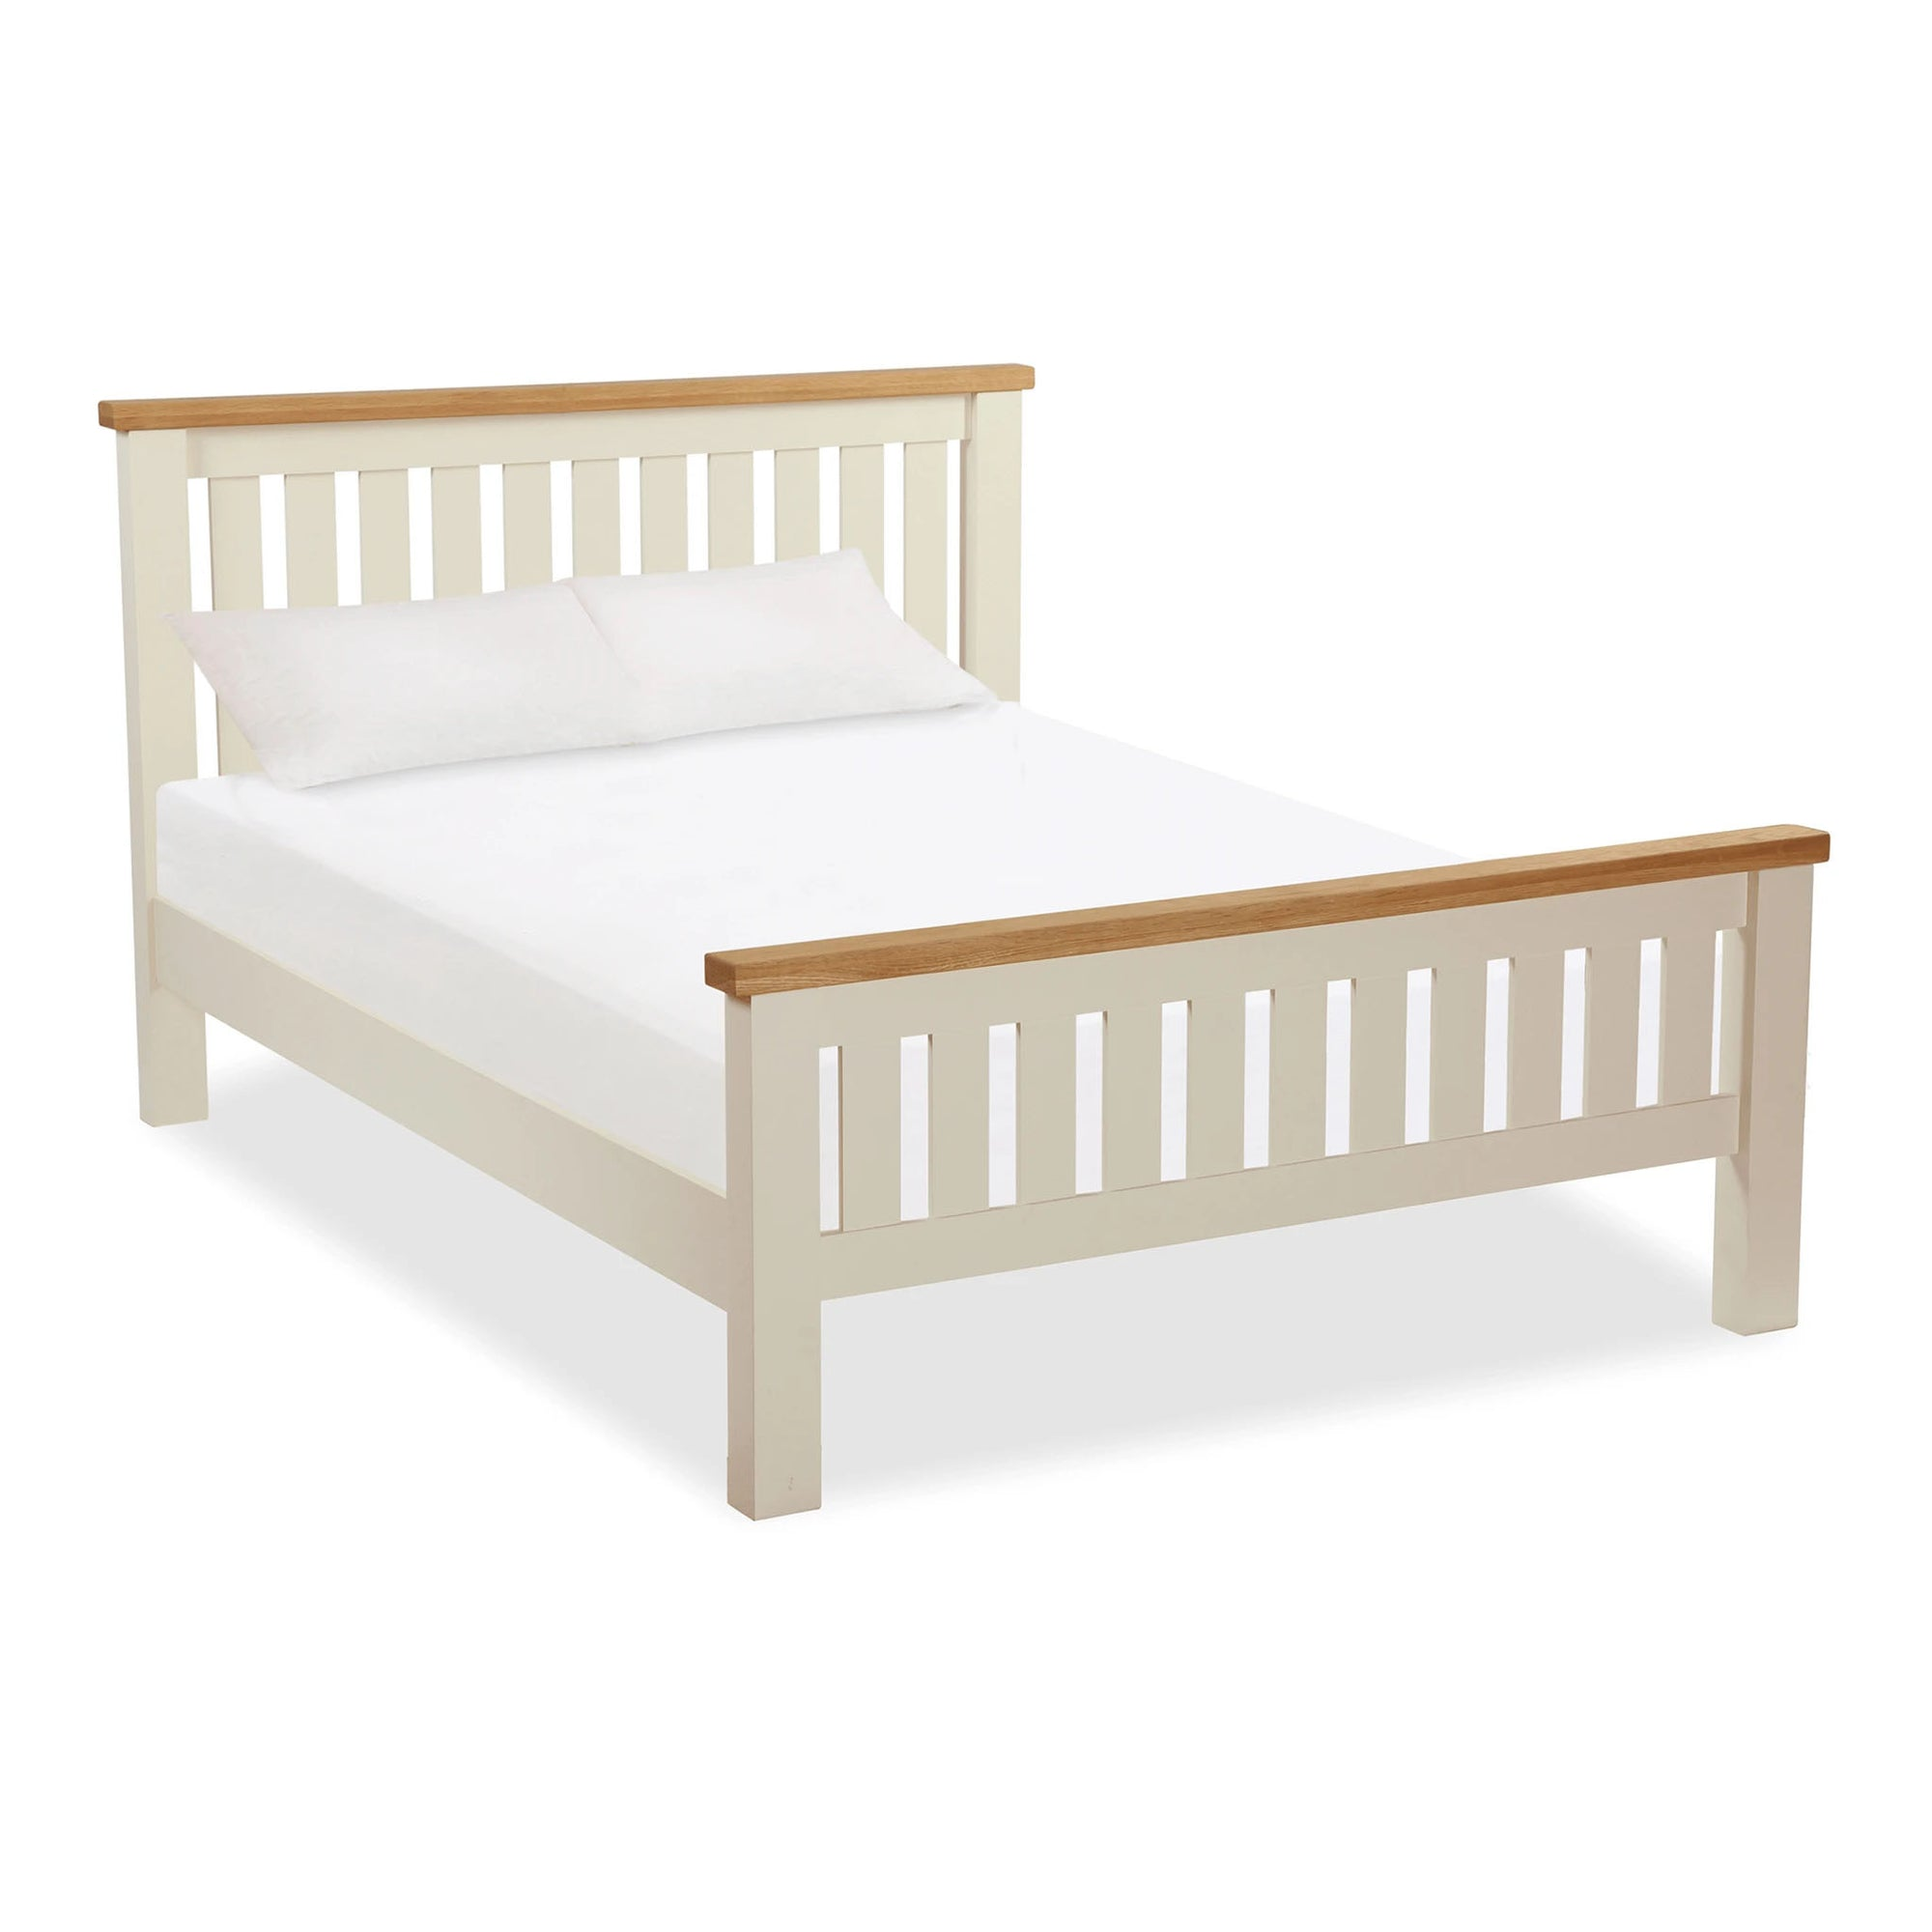 The Daymer Cream Wooden Double Bed Frame from Roseland Furniture